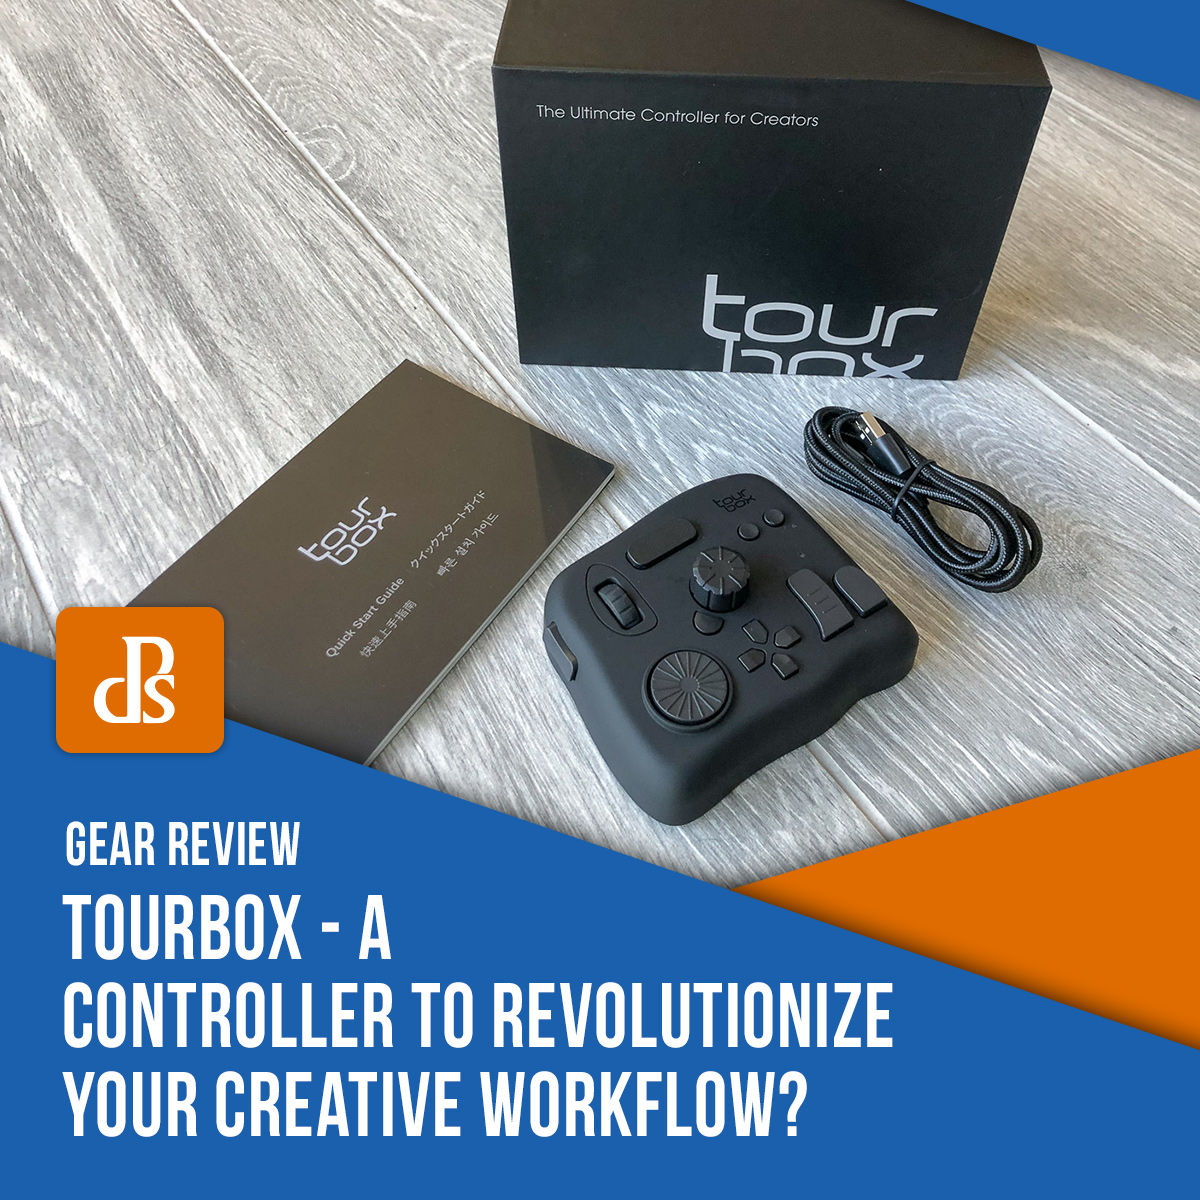 TourBox Review: A Controller to Revolutionize Your Creative Workflow?